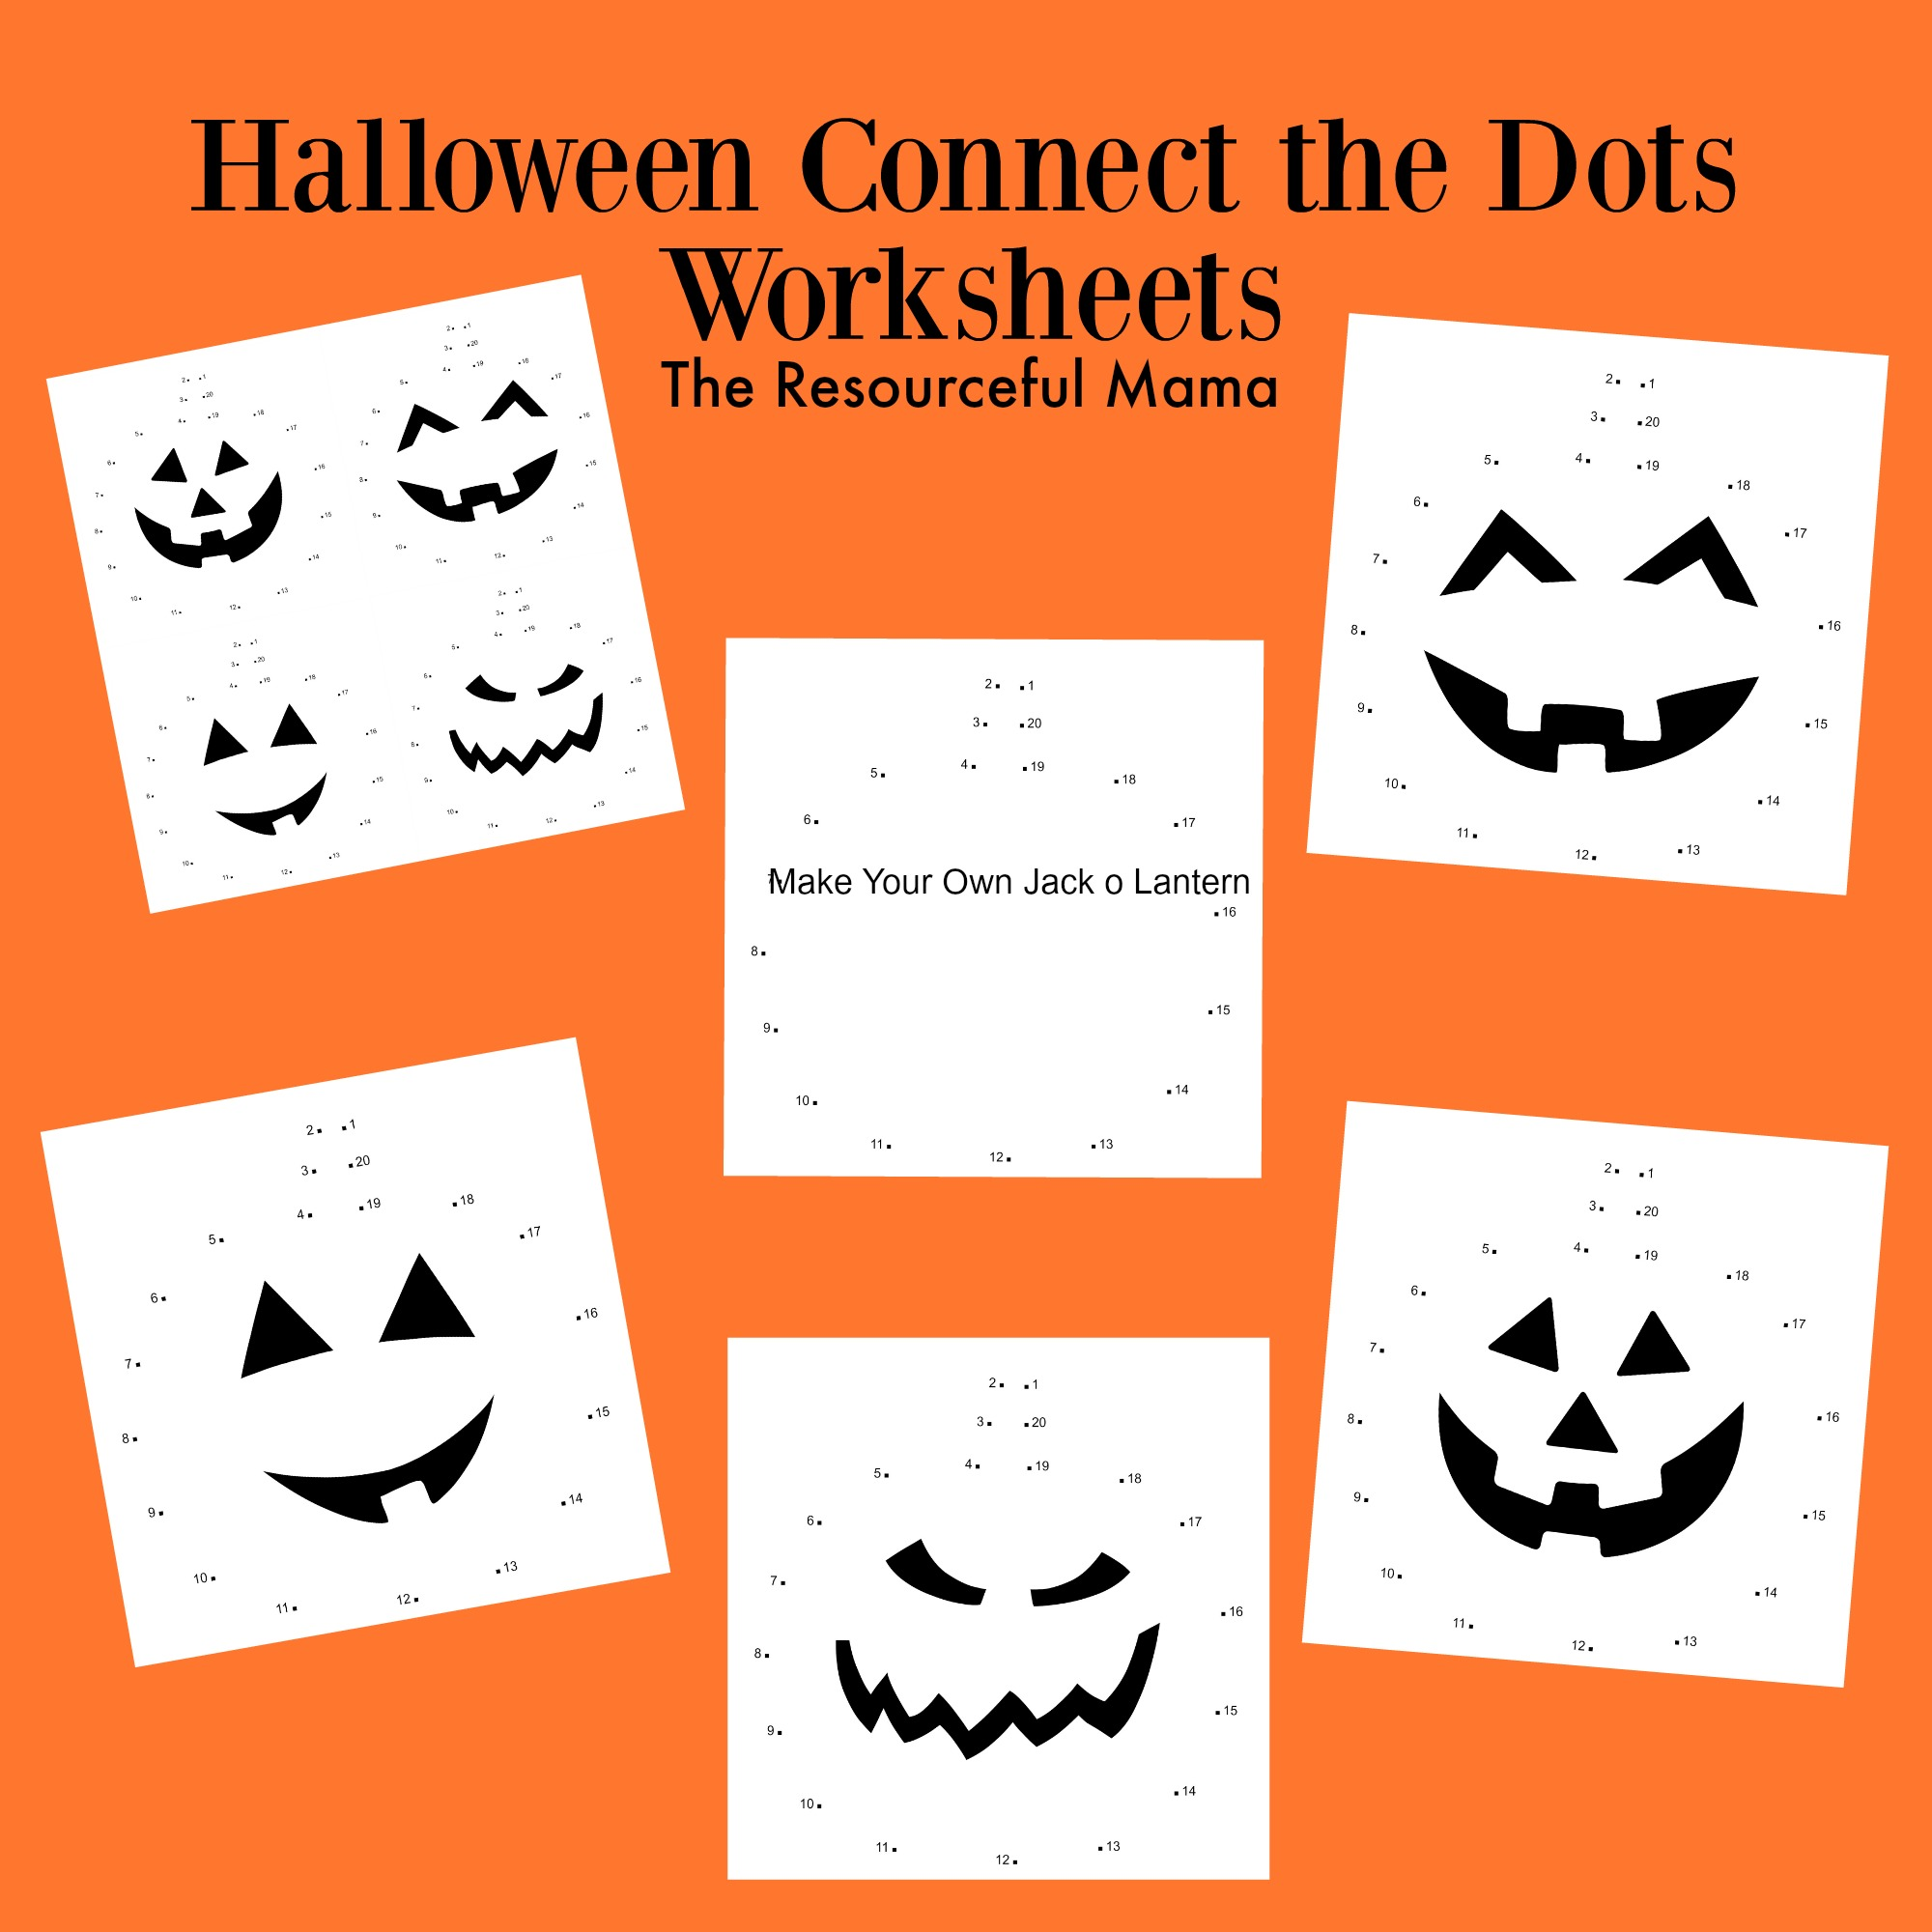 Halloween Connect The Dots Worksheets